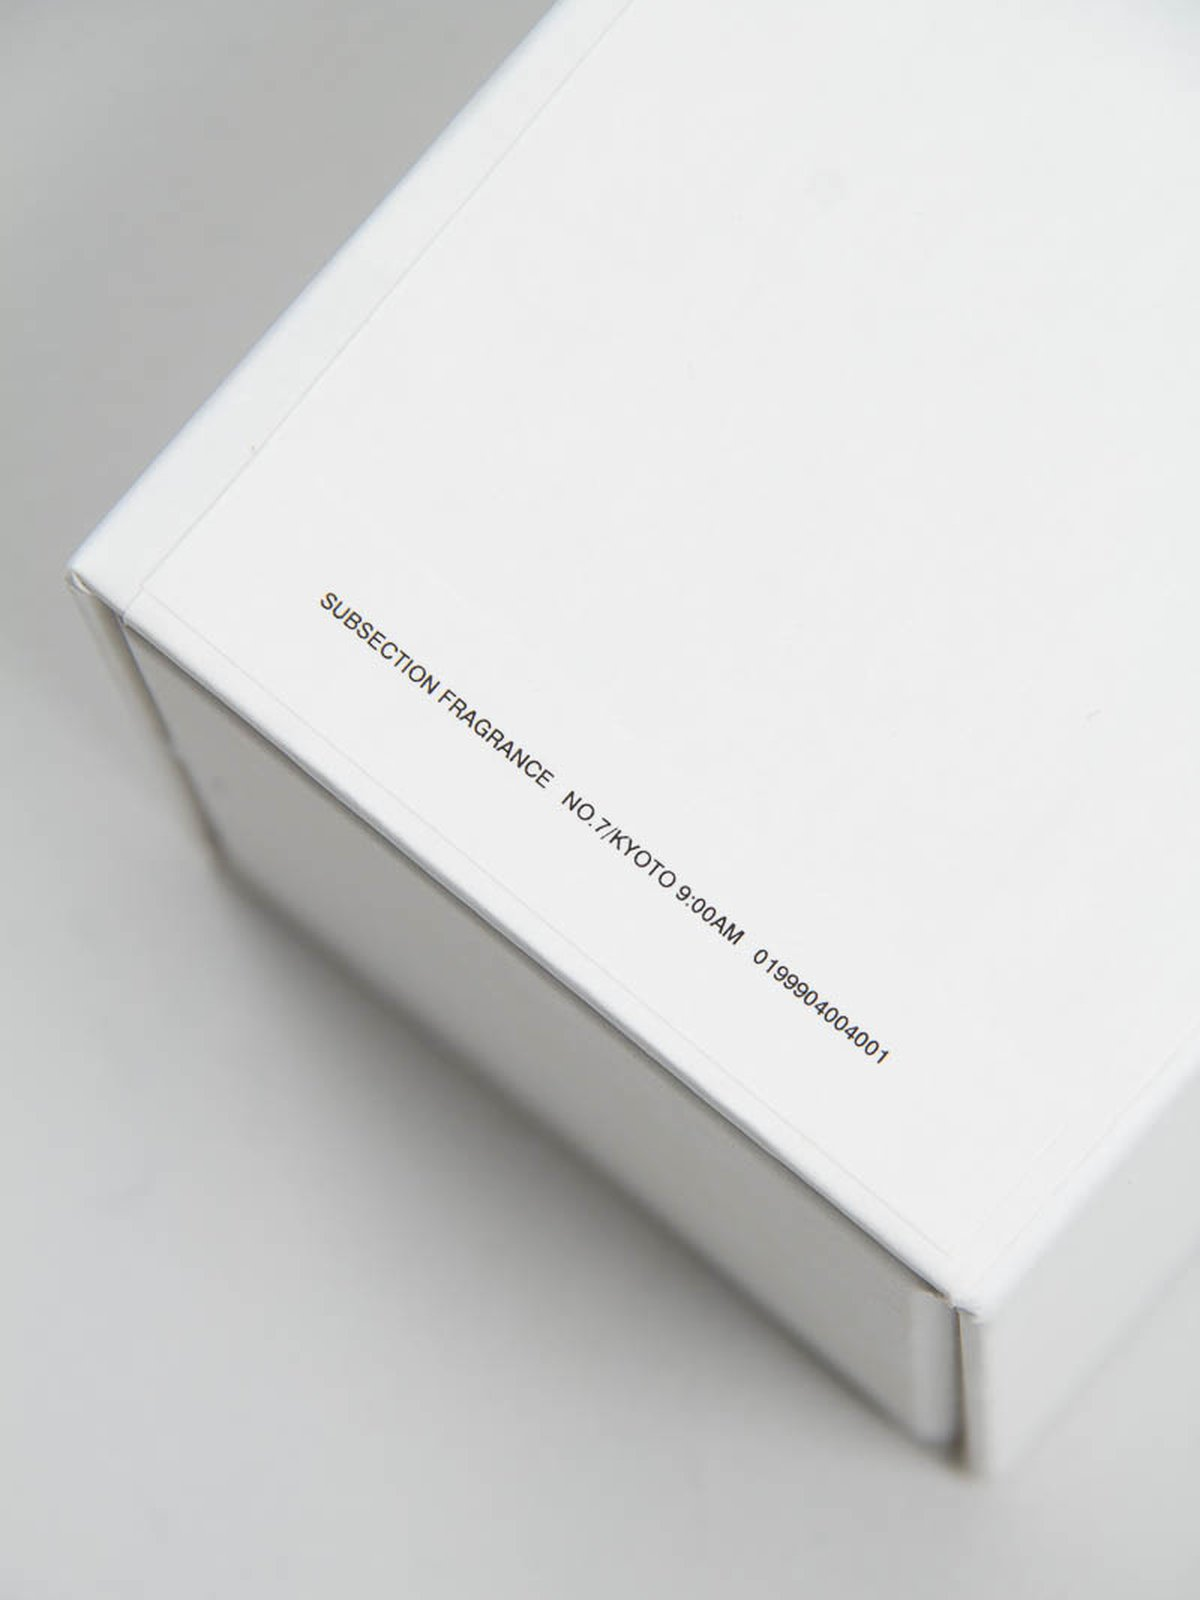 Subsection Fragrance No.7 Kyoto Candle - Image 4